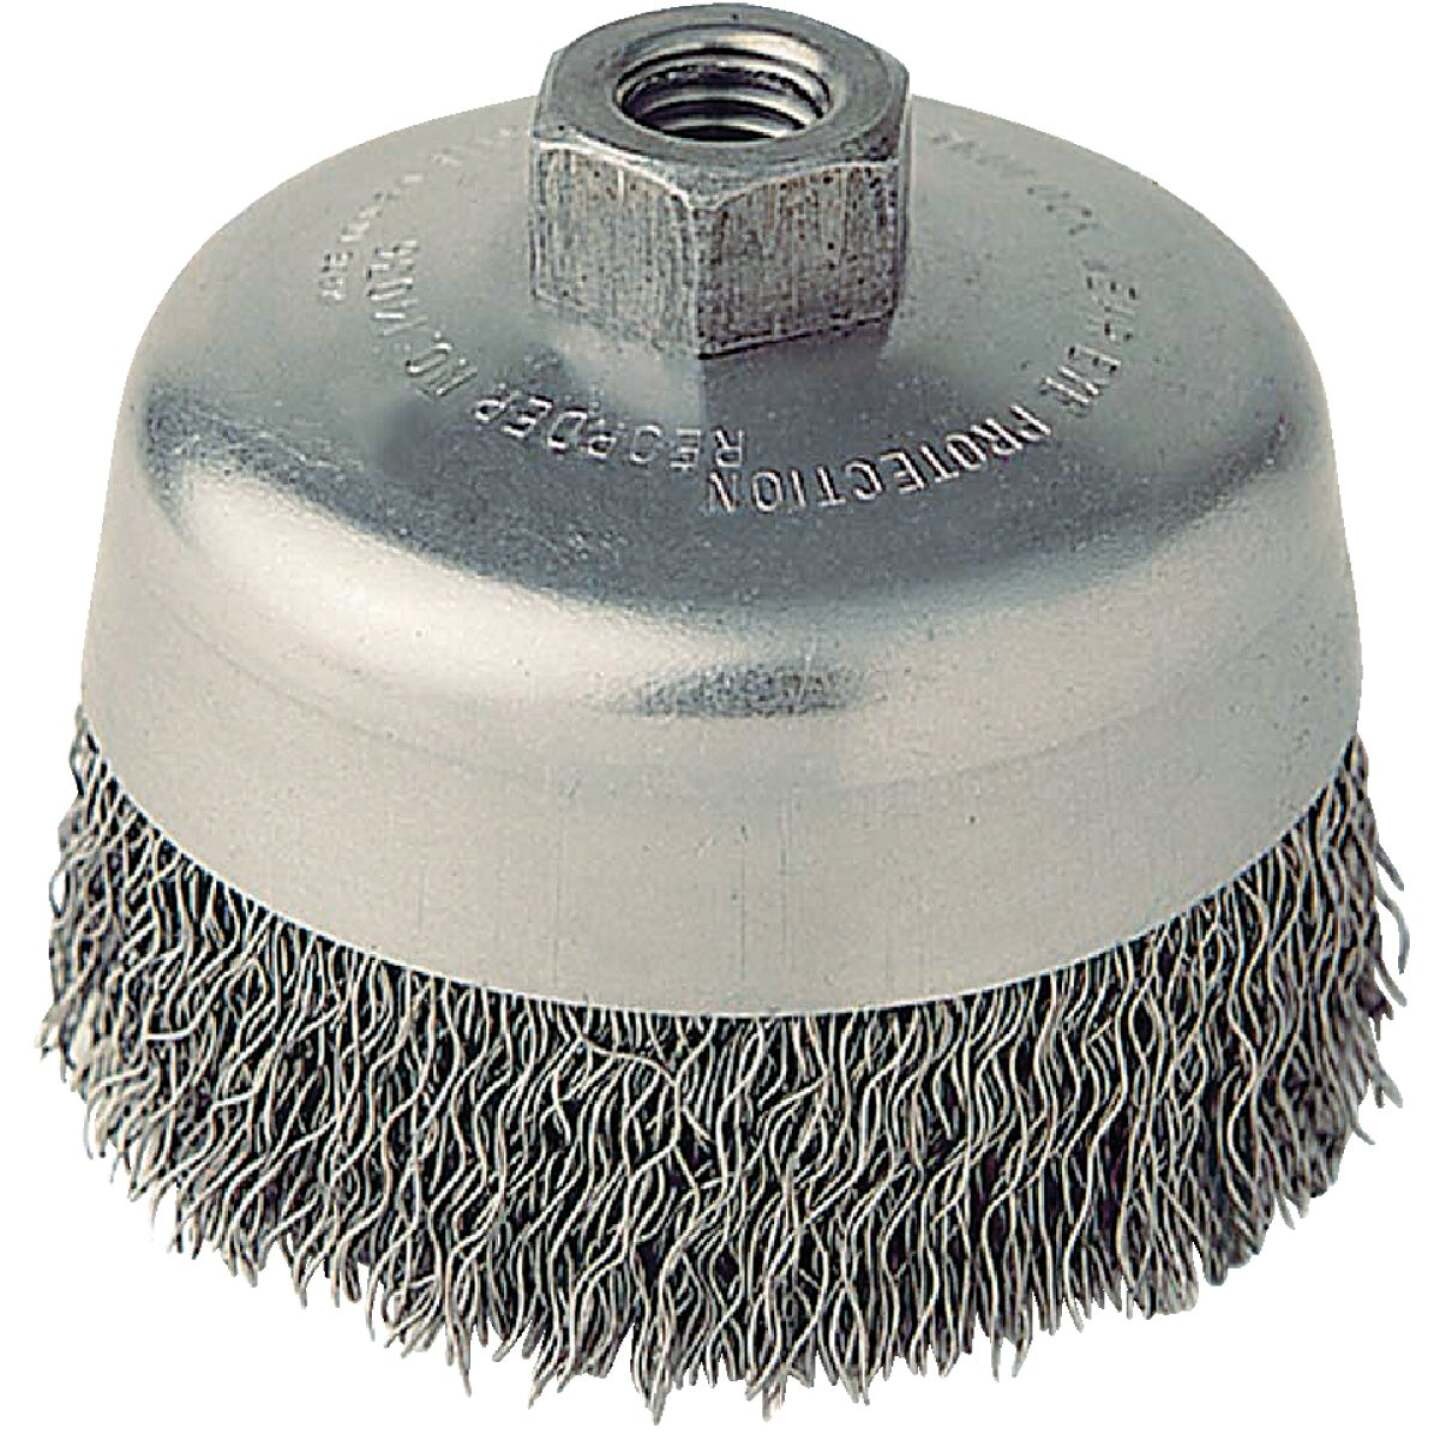 Weiler Vortec 5 In. Crimped 0.02 In. Angle Grinder Wire Brush Image 1